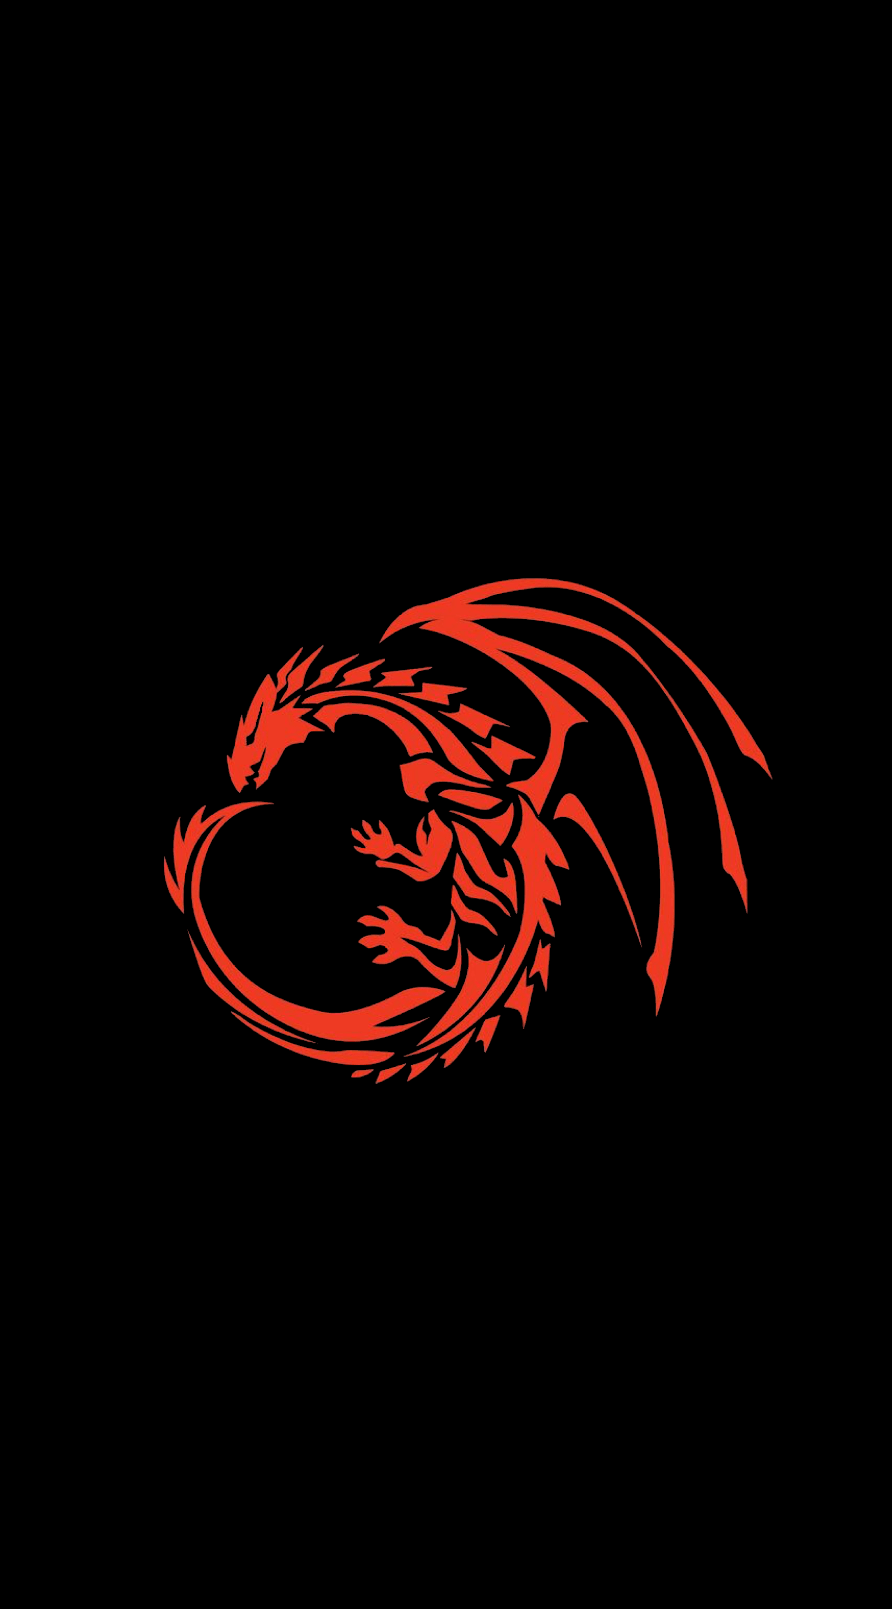 Game Amoled Wallpapers Wallpaper Cave